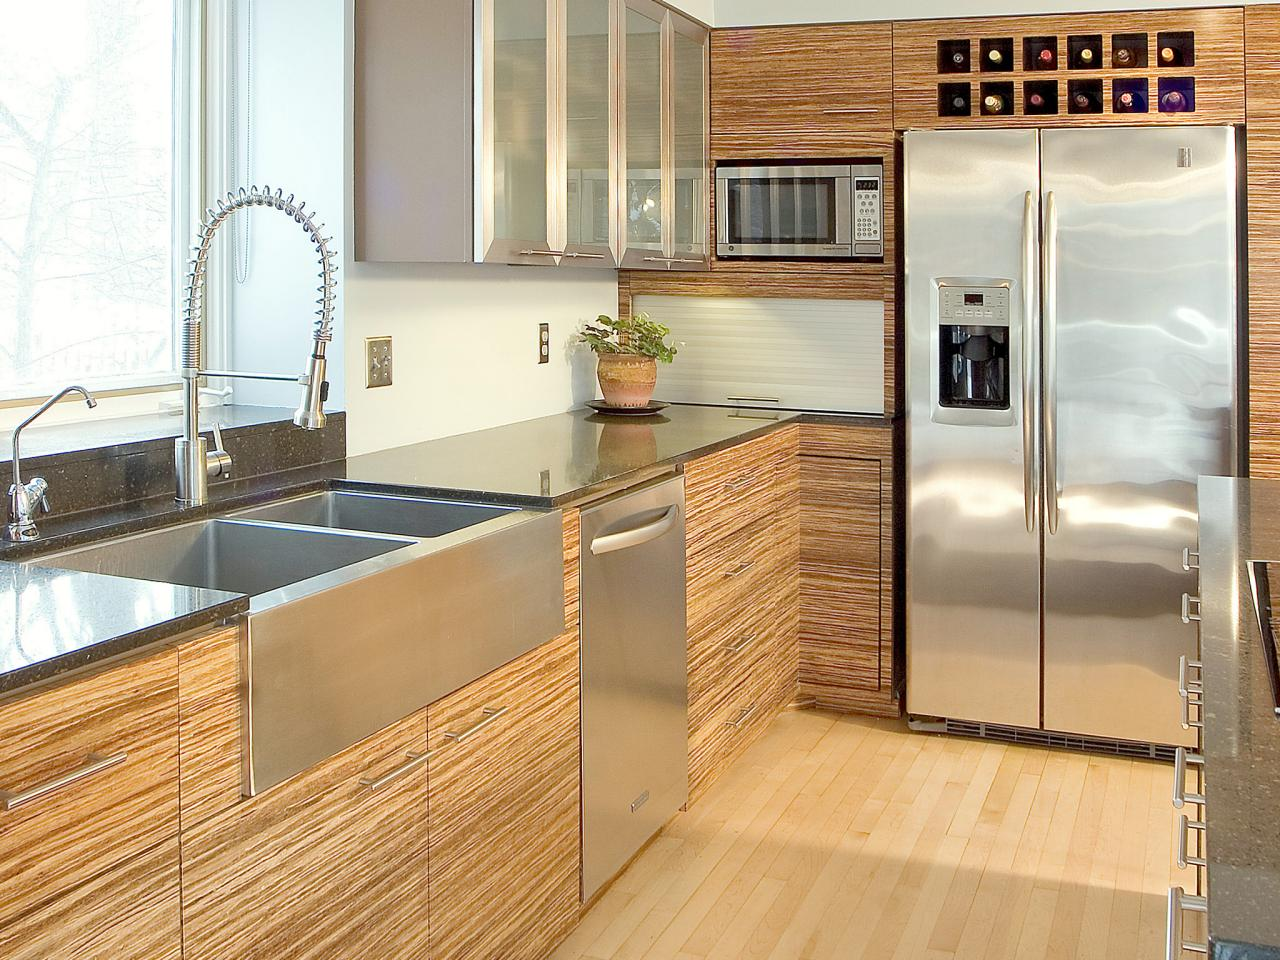 Modern kitchen cabinets pictures ideas tips from hgtv for Cheap modern kitchen designs